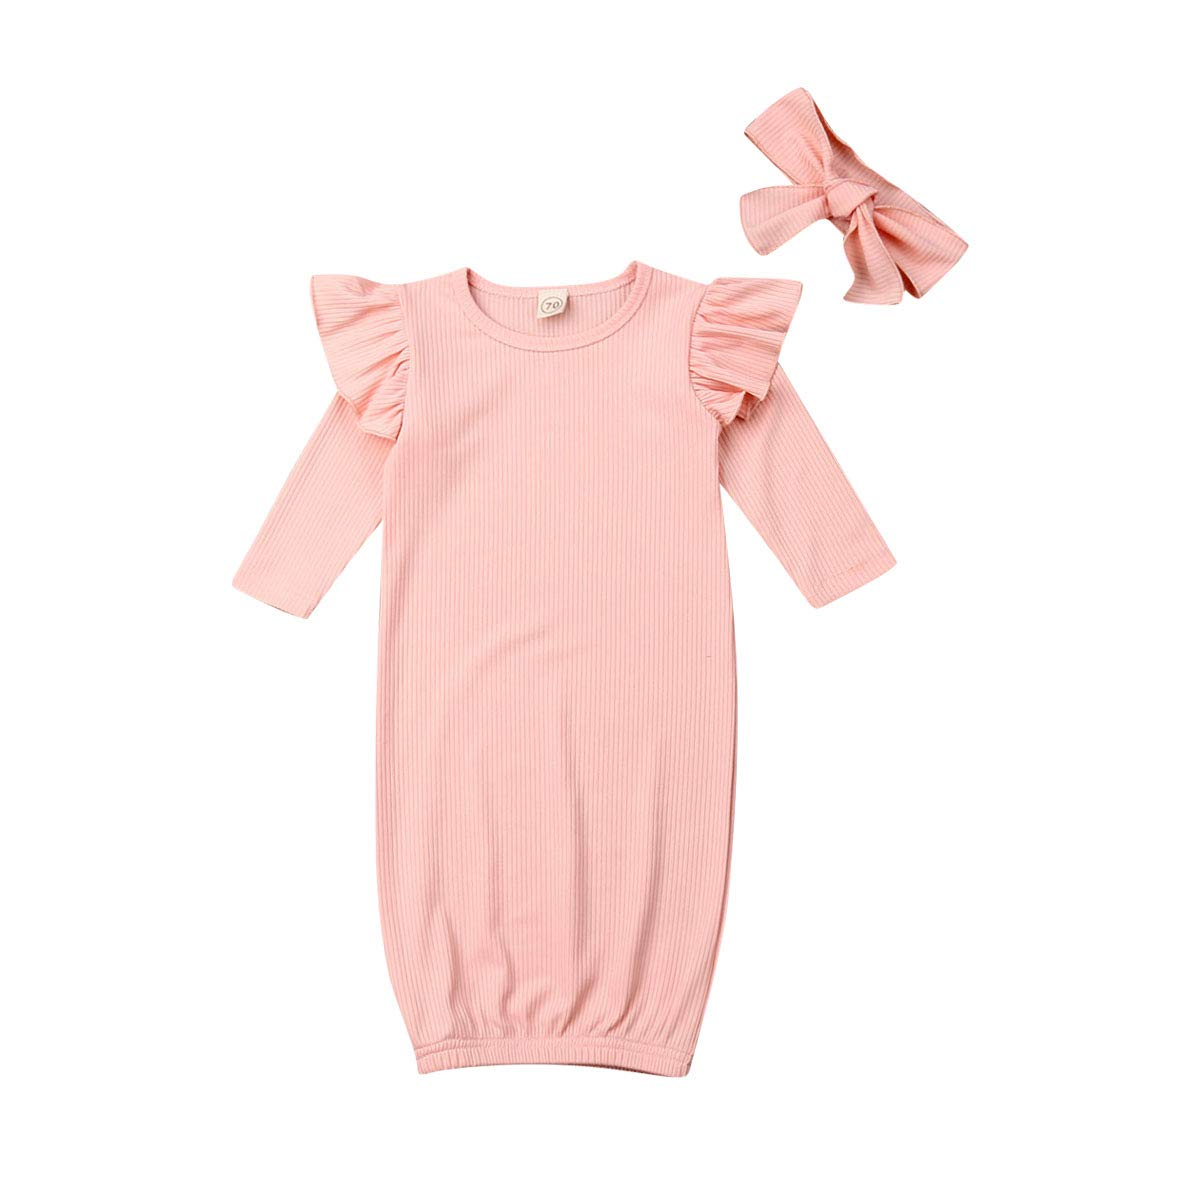 Infant Baby Girls Gowns Love at First Sight Print Sleepwear Nightgowns Mitten Cuffs Sleeper Gowns with Headband